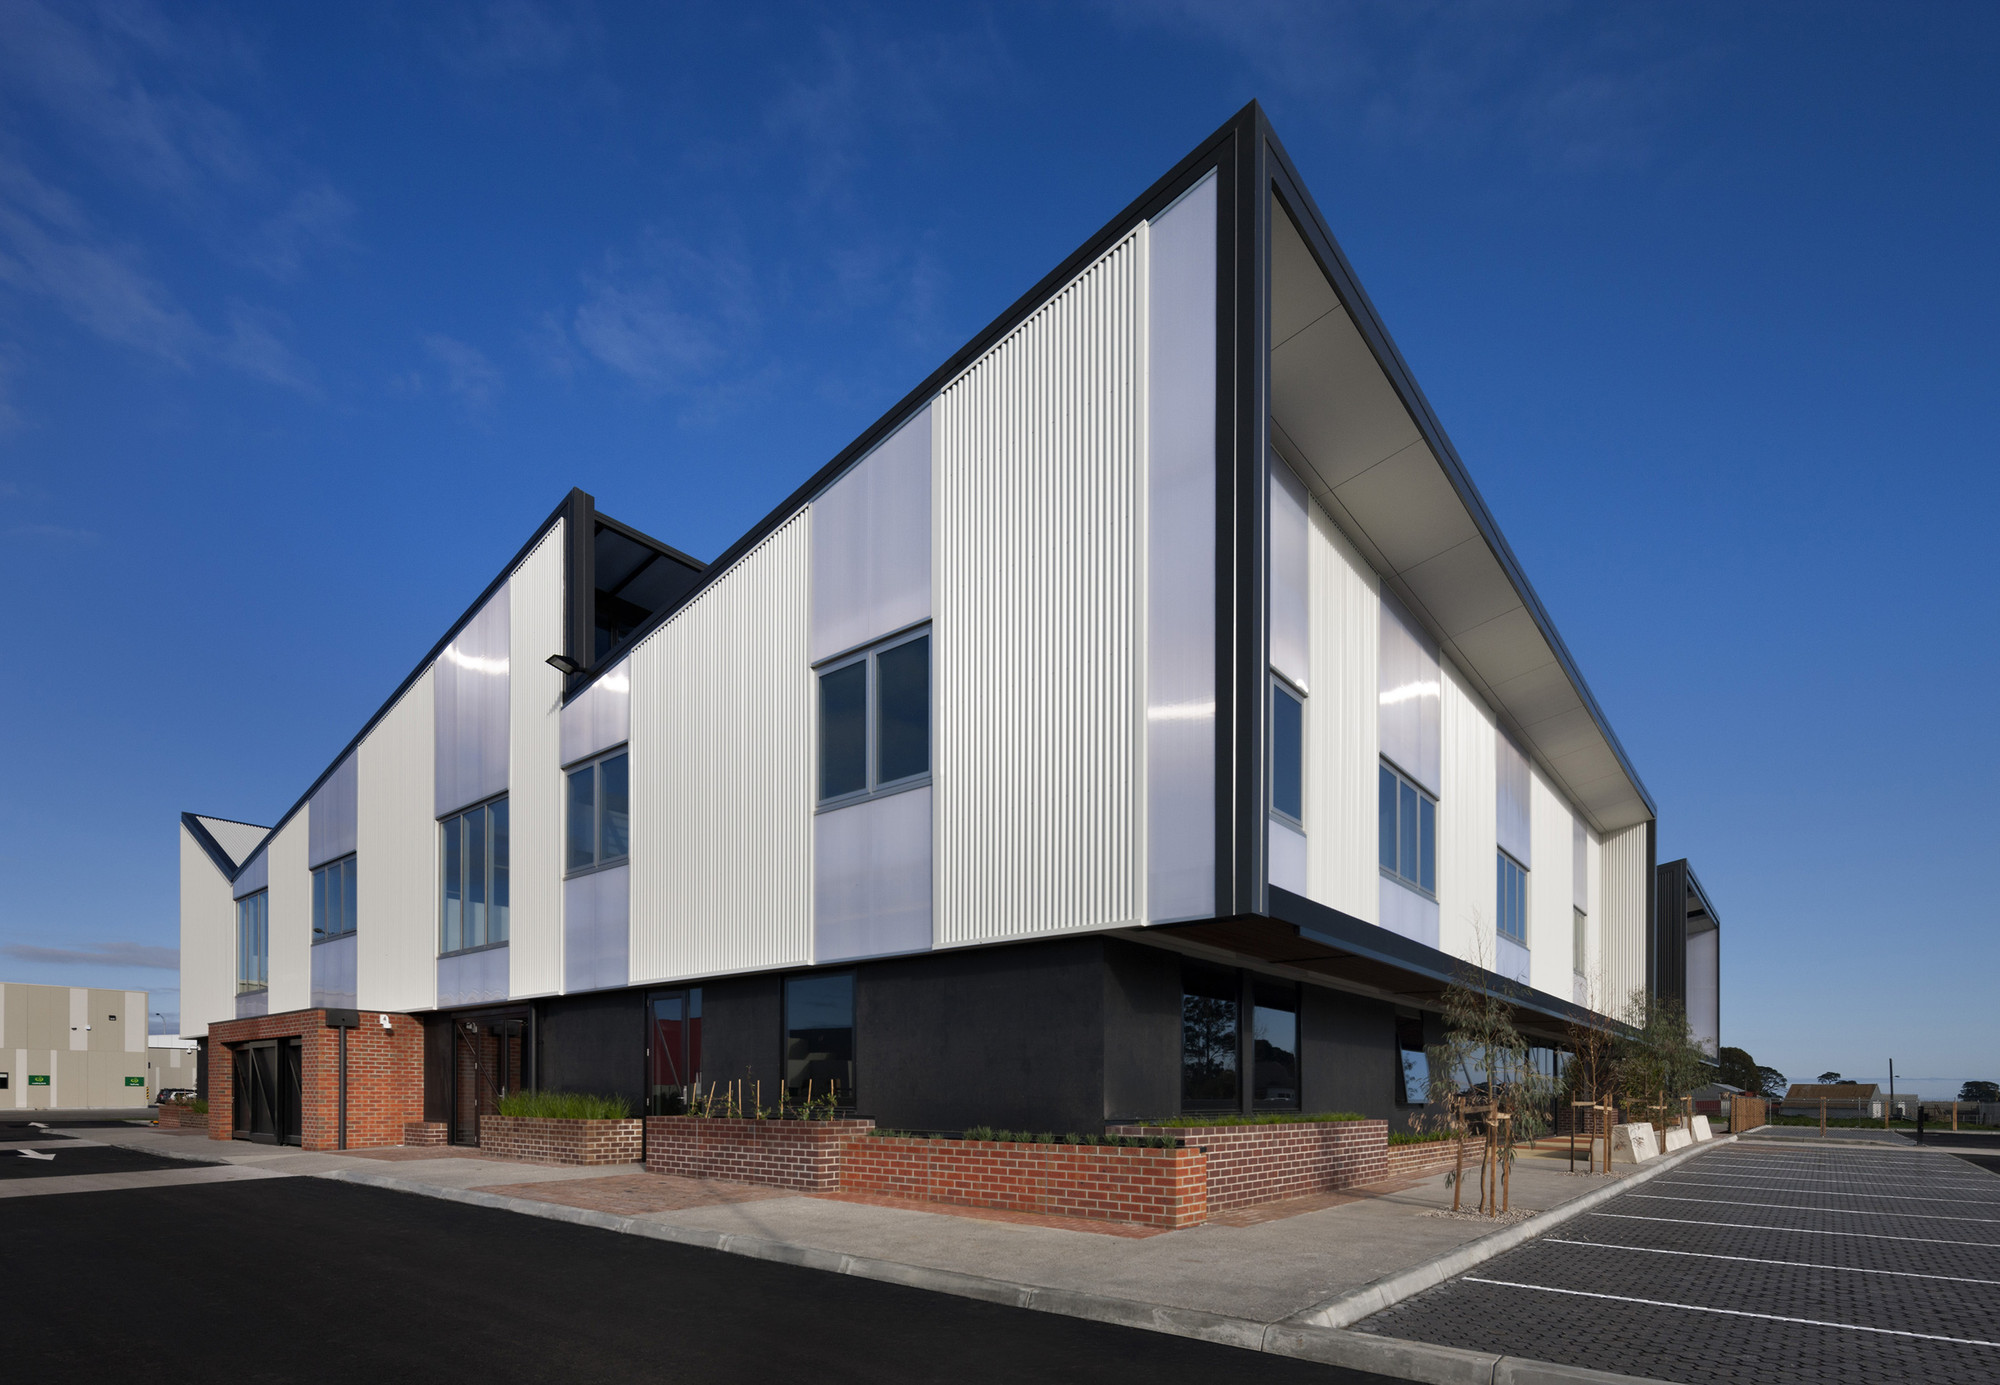 Ballarat Community Health Primary Care Centre / DesignInc, © Dianna Snape